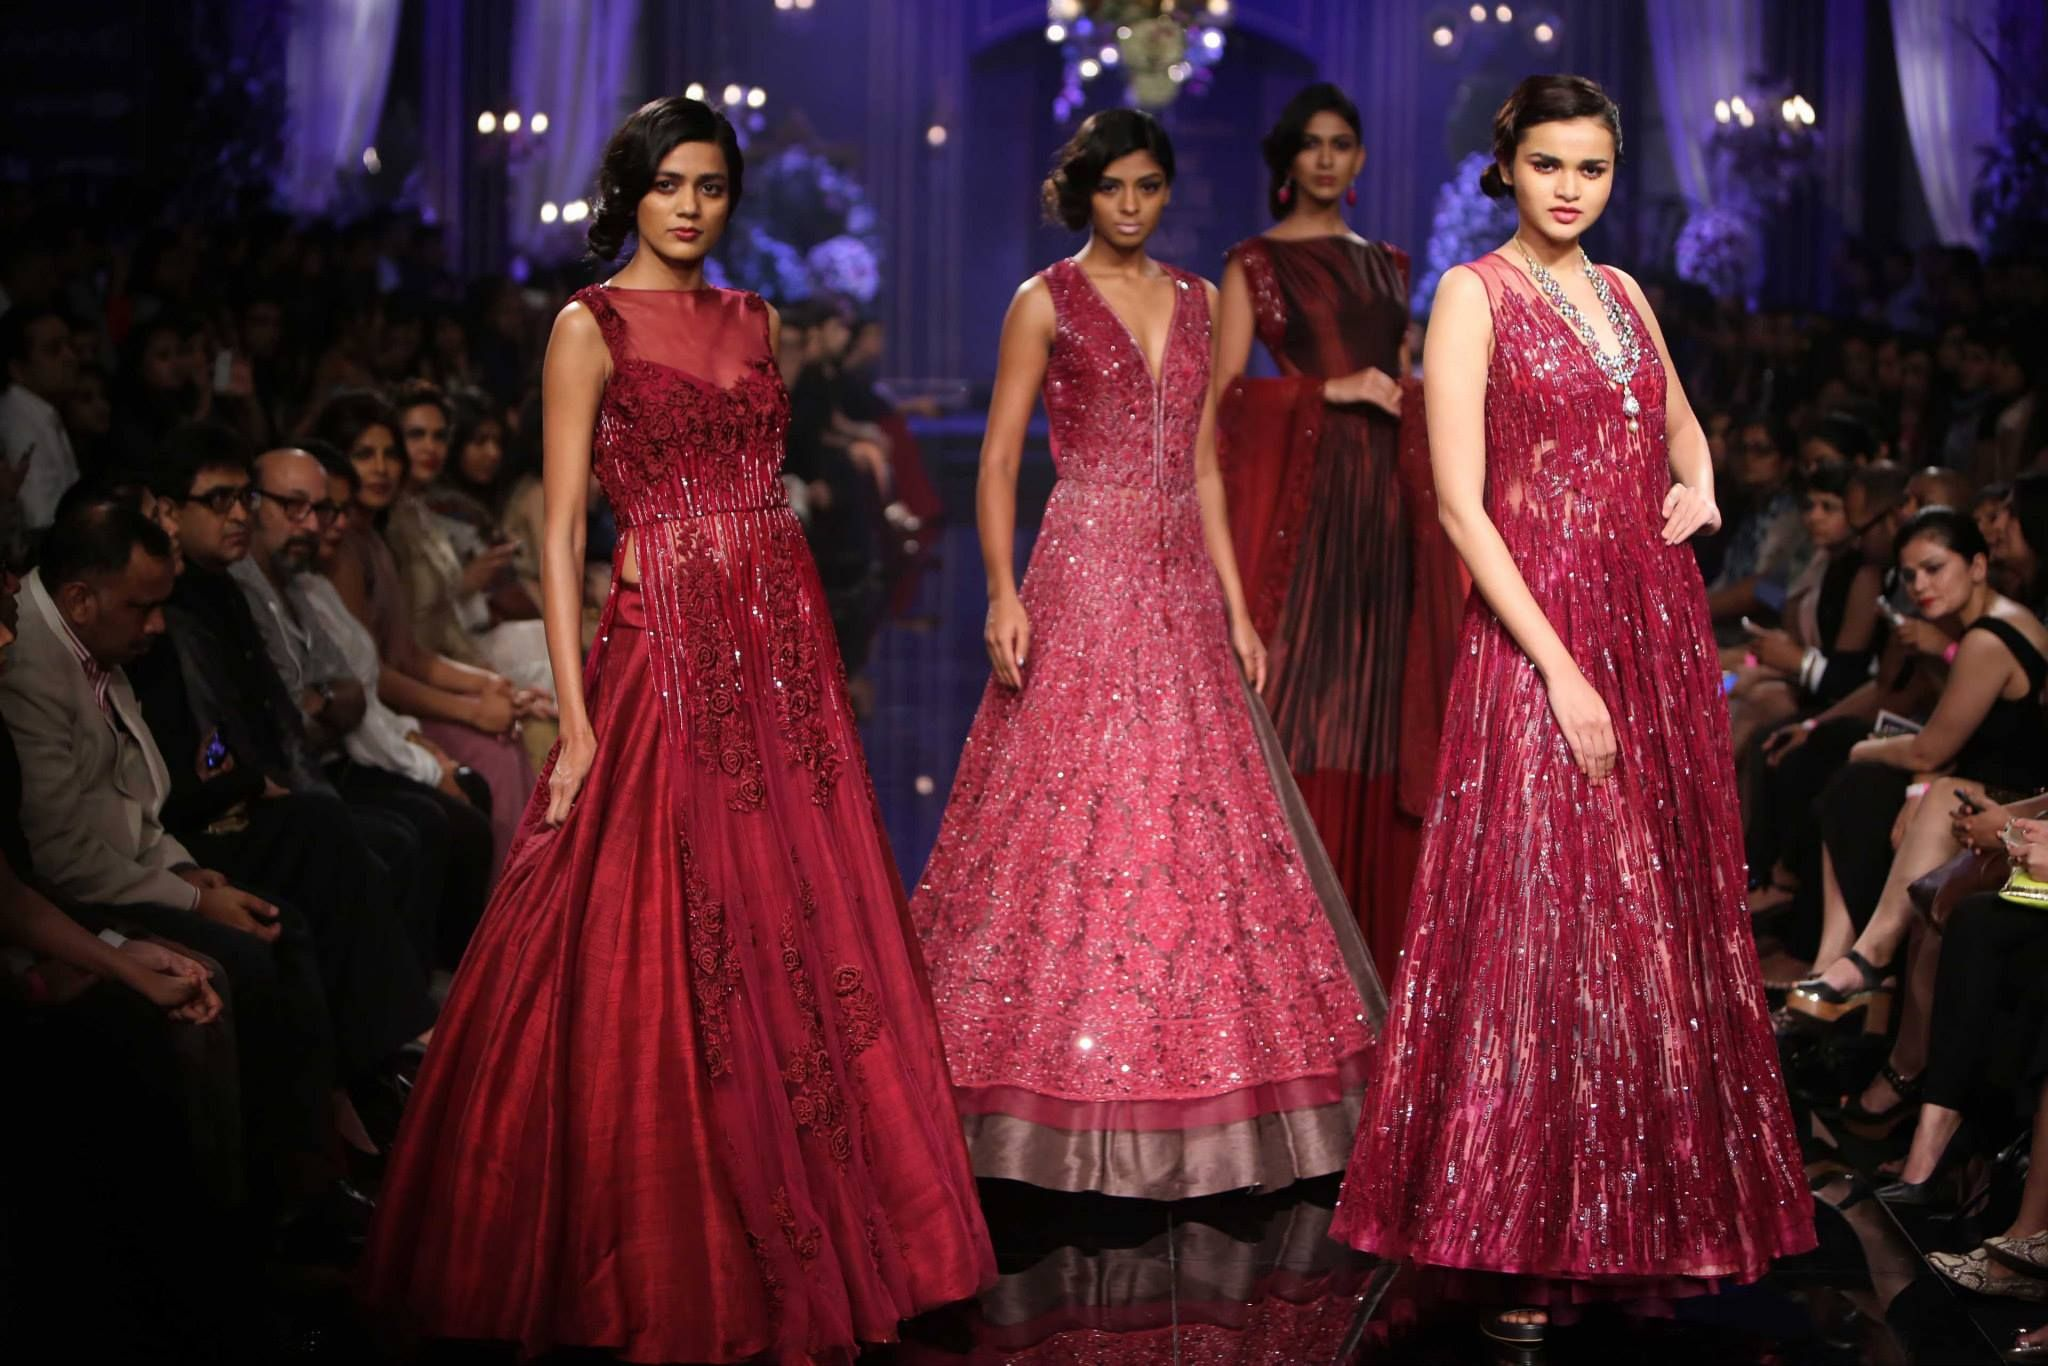 Maroony red gownsdresses by manish malhotra as seen at lakme